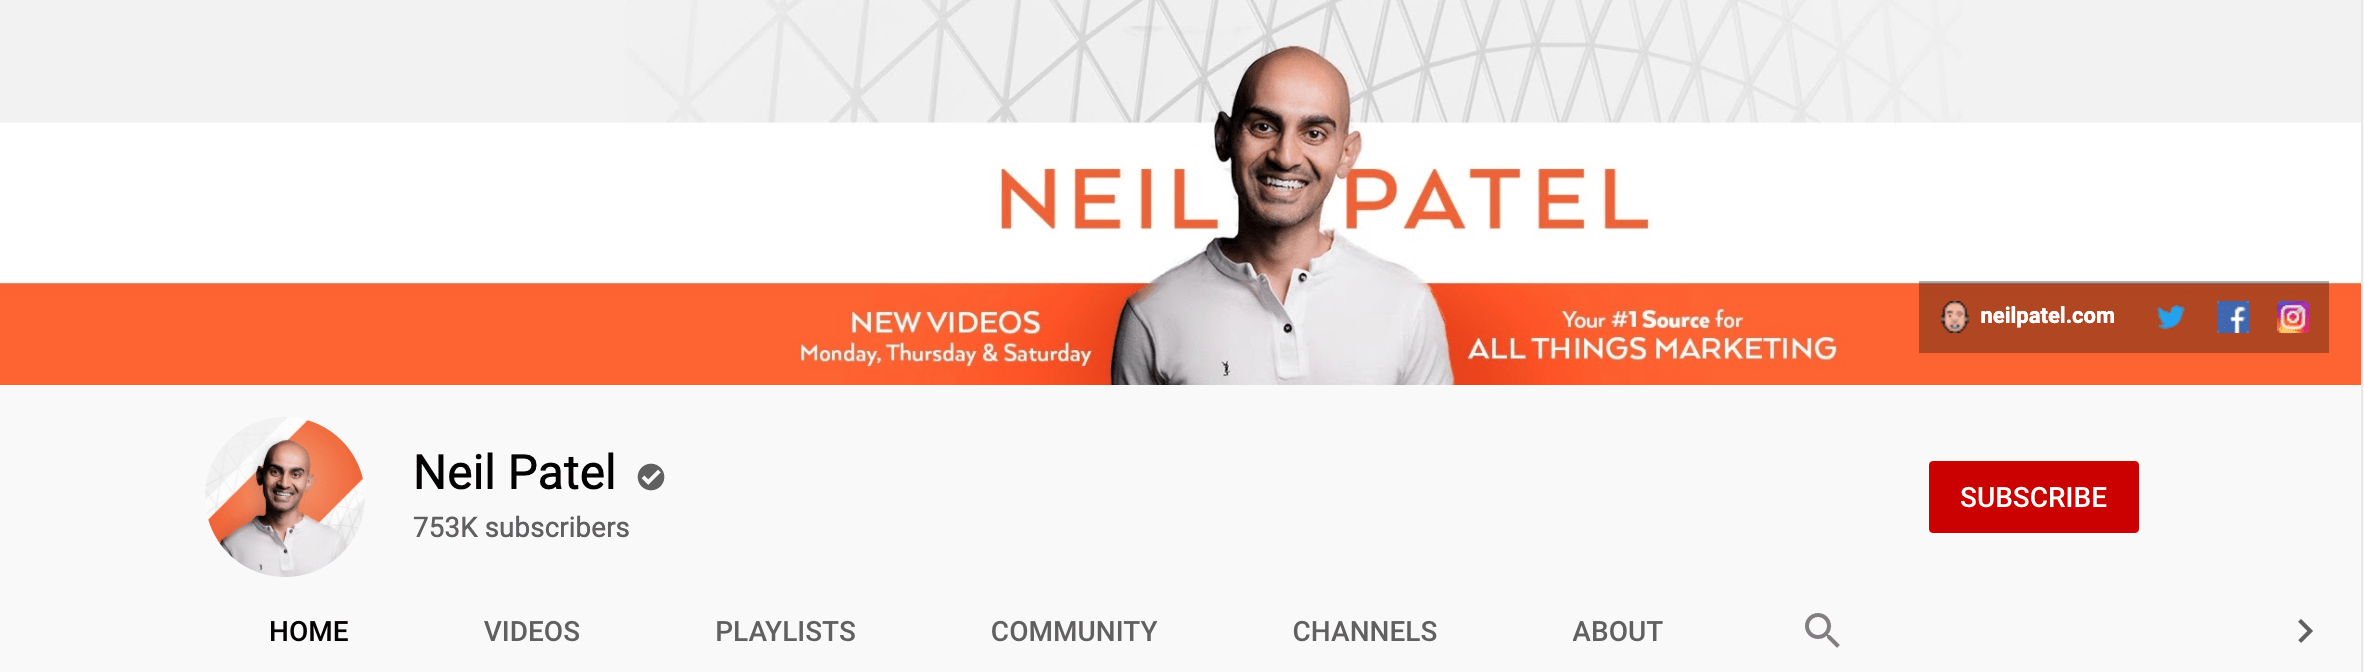 Neil Patel uses an image of his face on Youtube for maintaining consistency across social media platforms